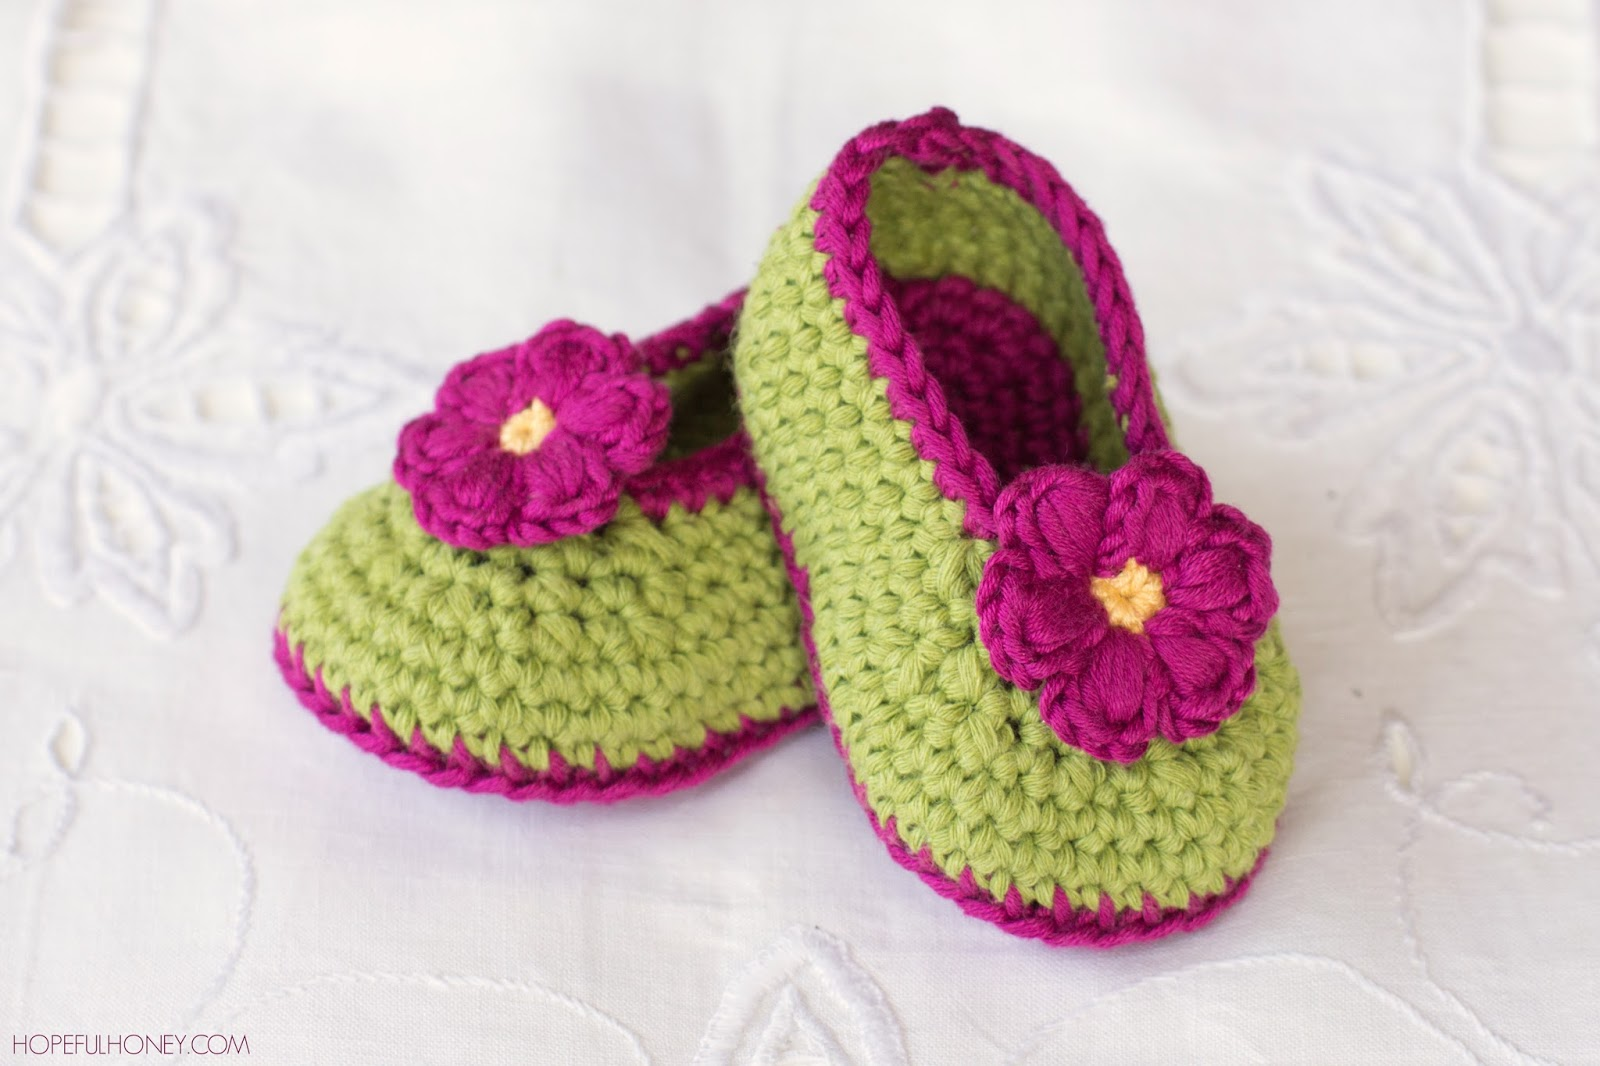 Crocheting Booties : ... , Crochet, Create: Fairy Blossom Baby Booties - Free Crochet Pattern